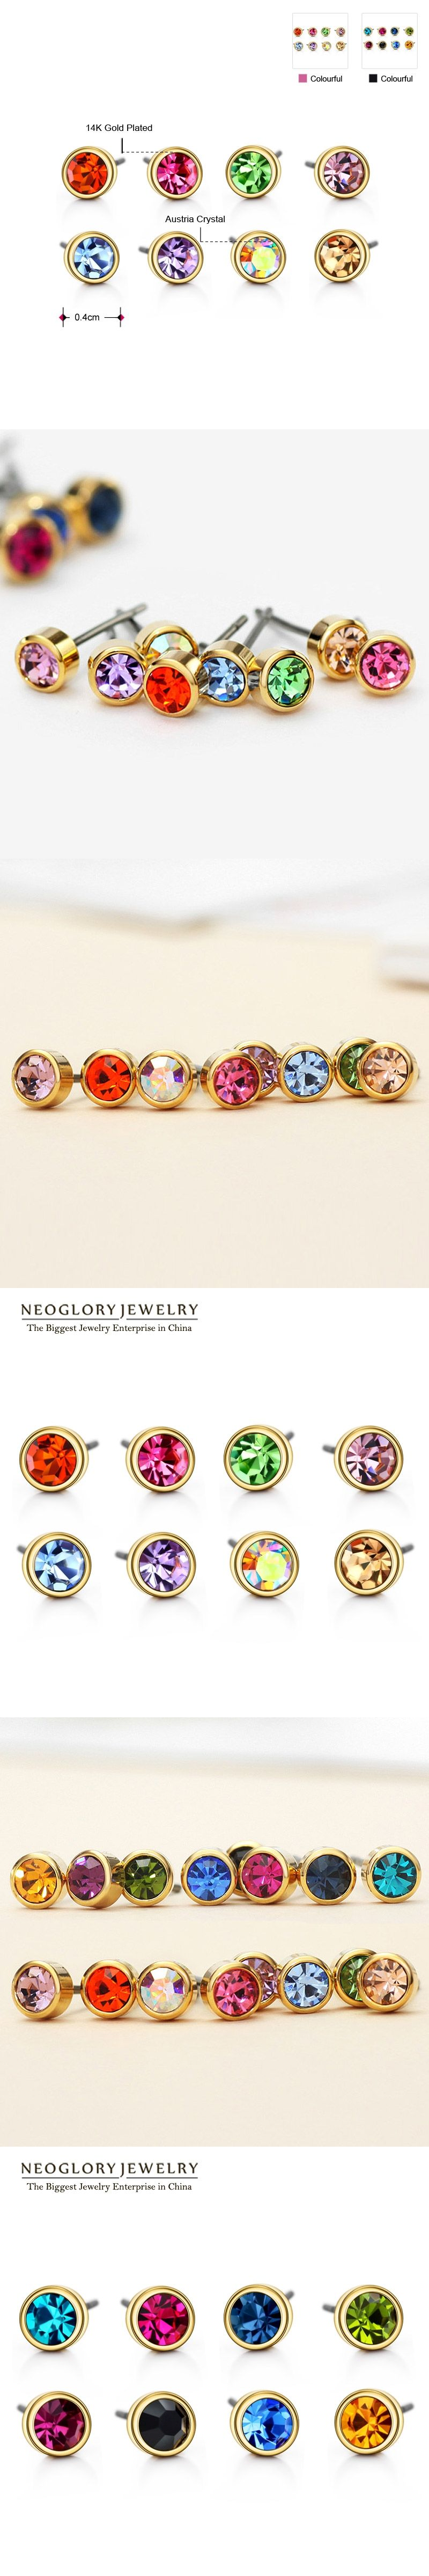 stud colorful available demira check joolz on out earrings pin it download by